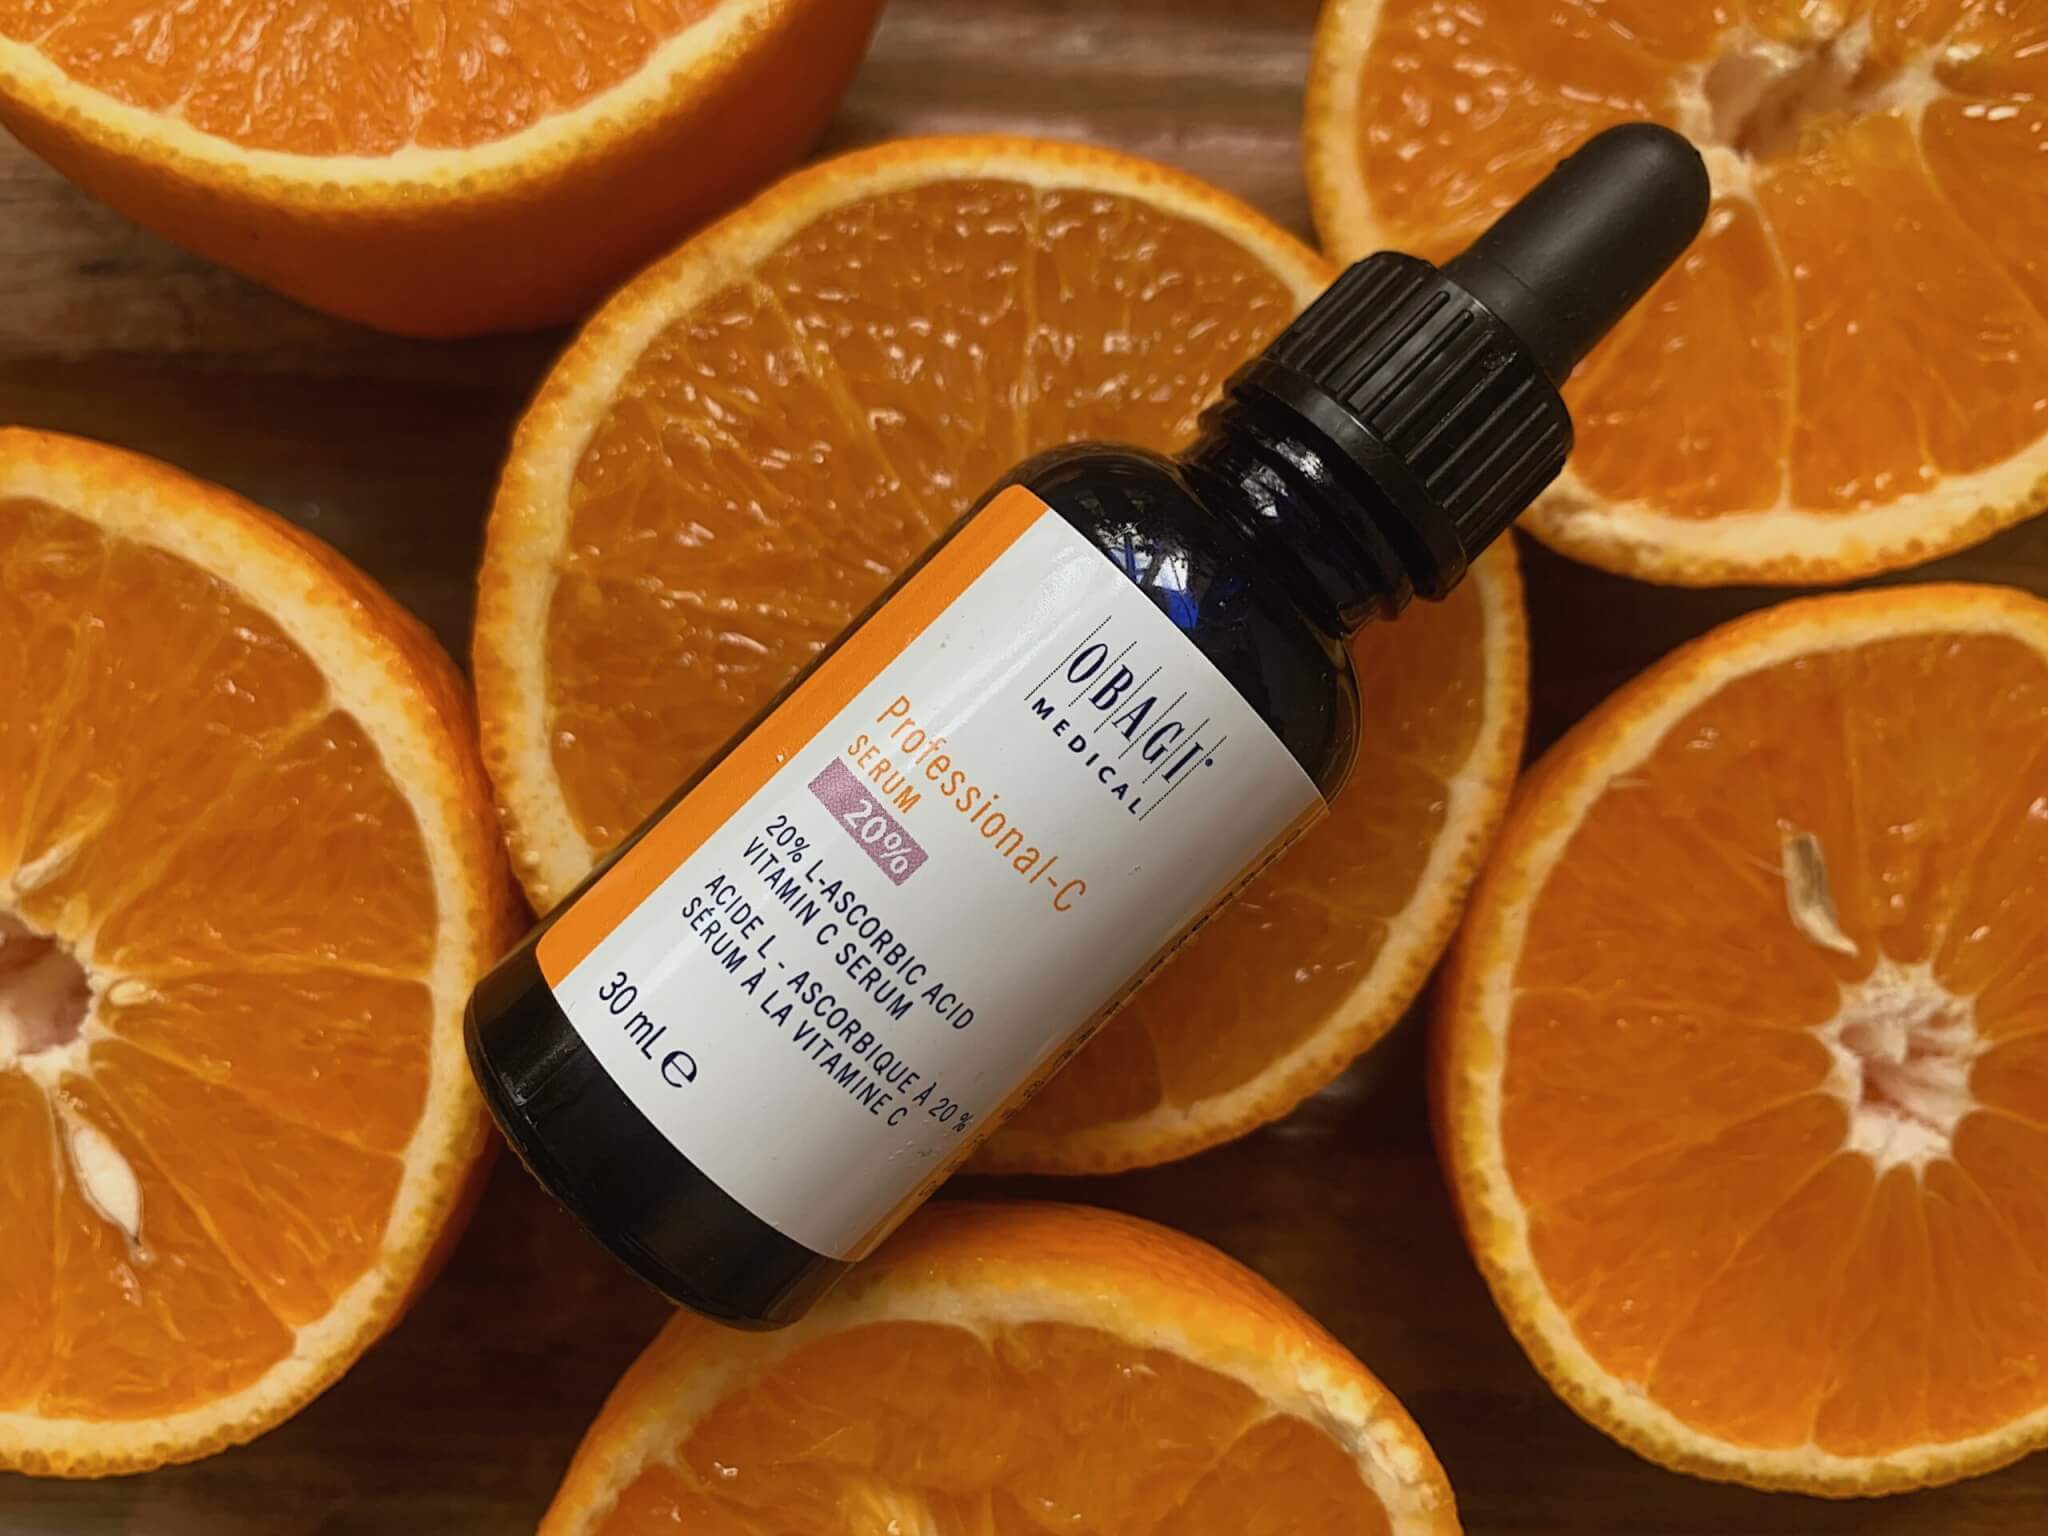 Benefits of Vitamin C for your skin with Obagi